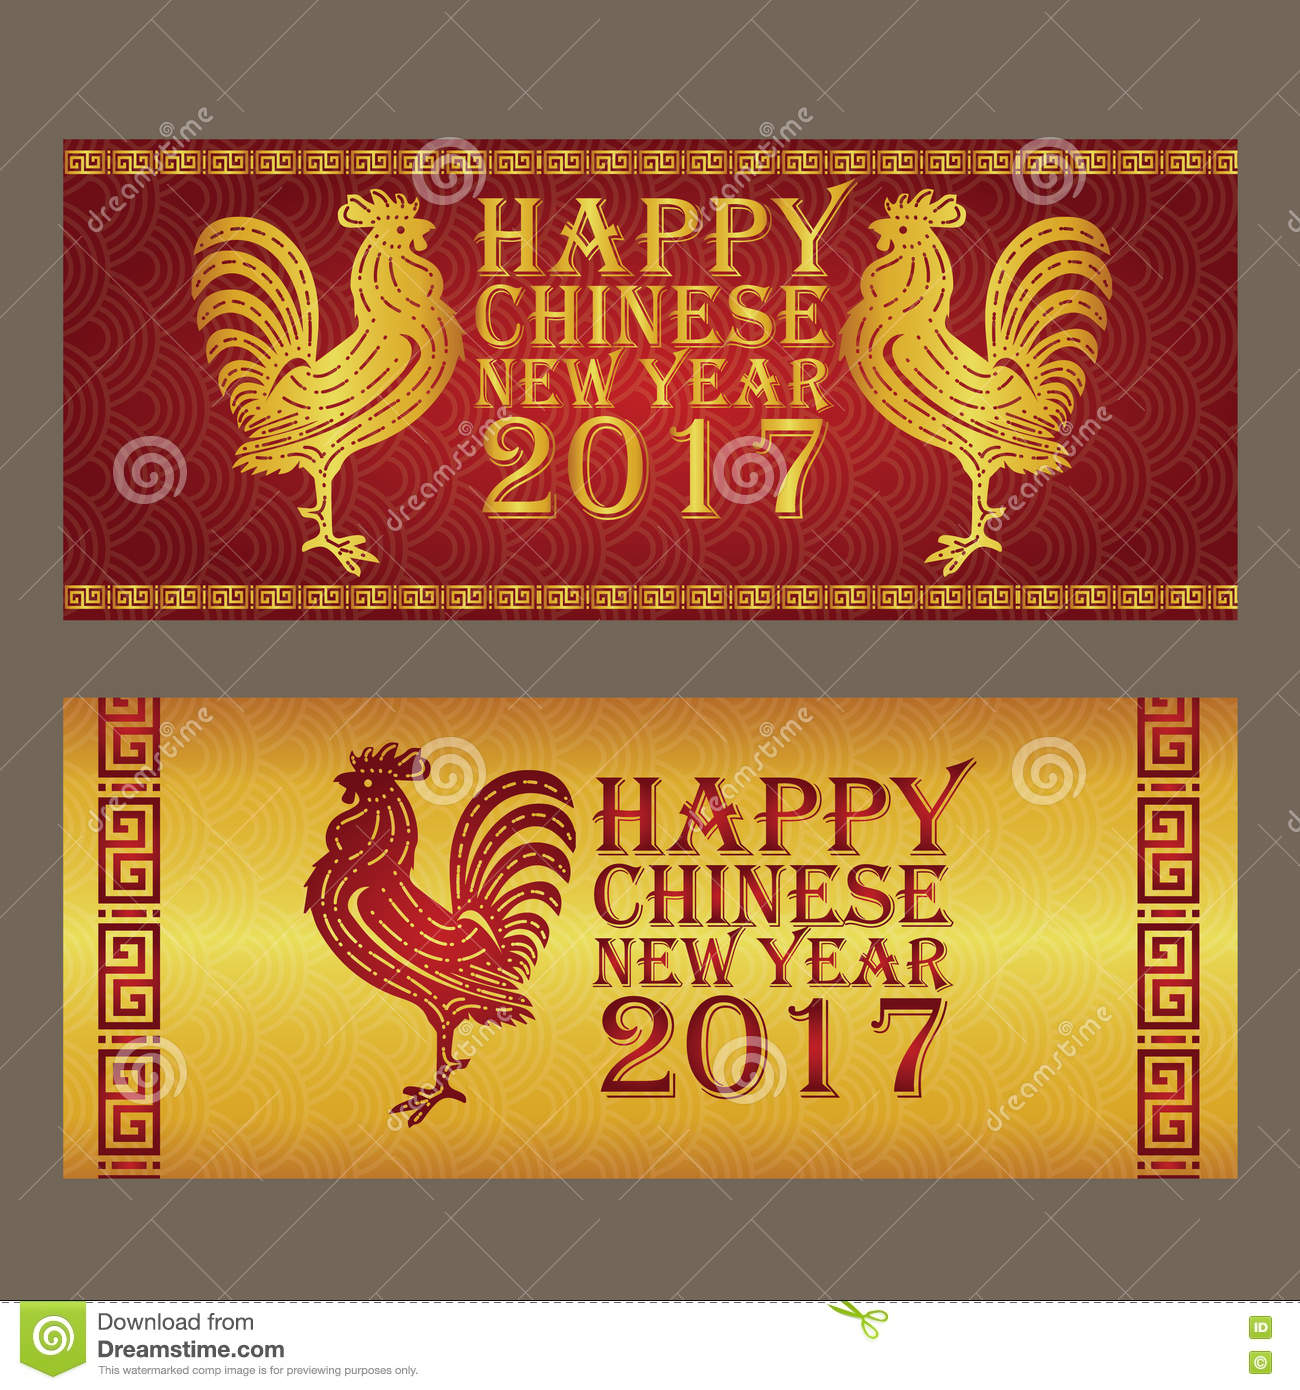 happy chinese new year 2017 year chicken banner card stock illustrations 1485 happy chinese new year 2017 year chicken banner card stock illustrations